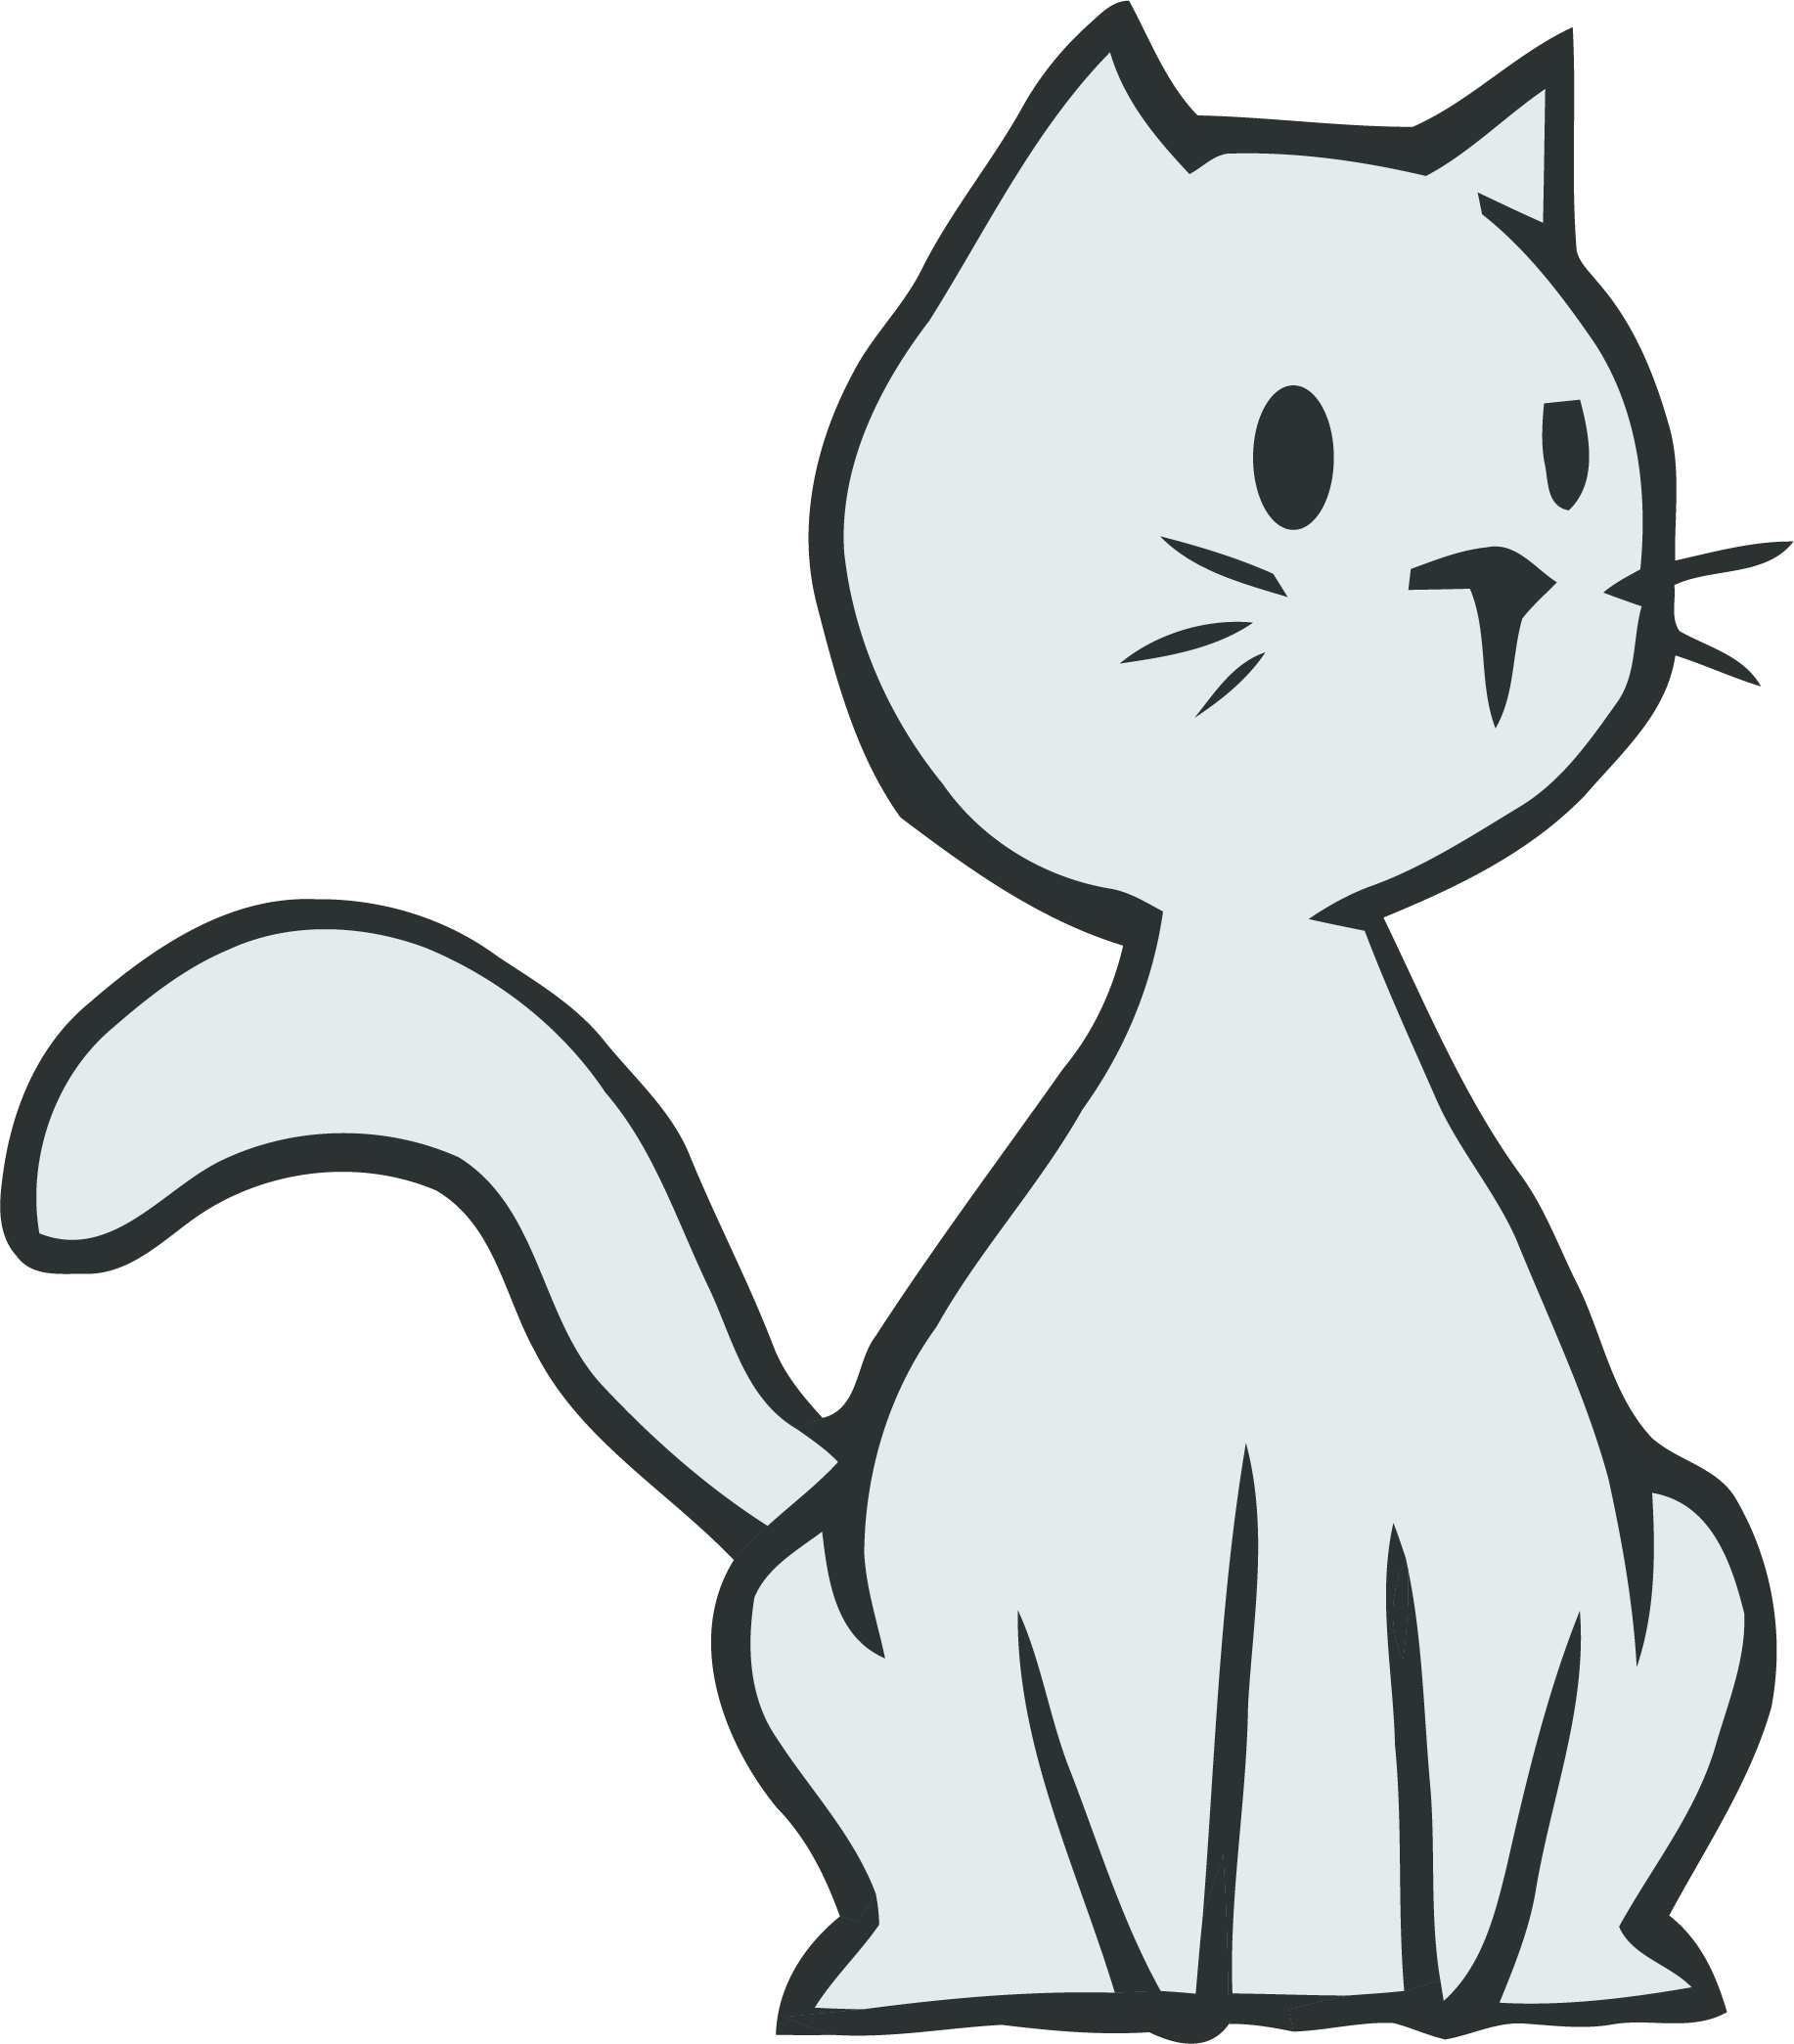 Thinking Cat Clipart Png Easy To Draw Cartoon Cats Transparent Cartoon Jing Fm